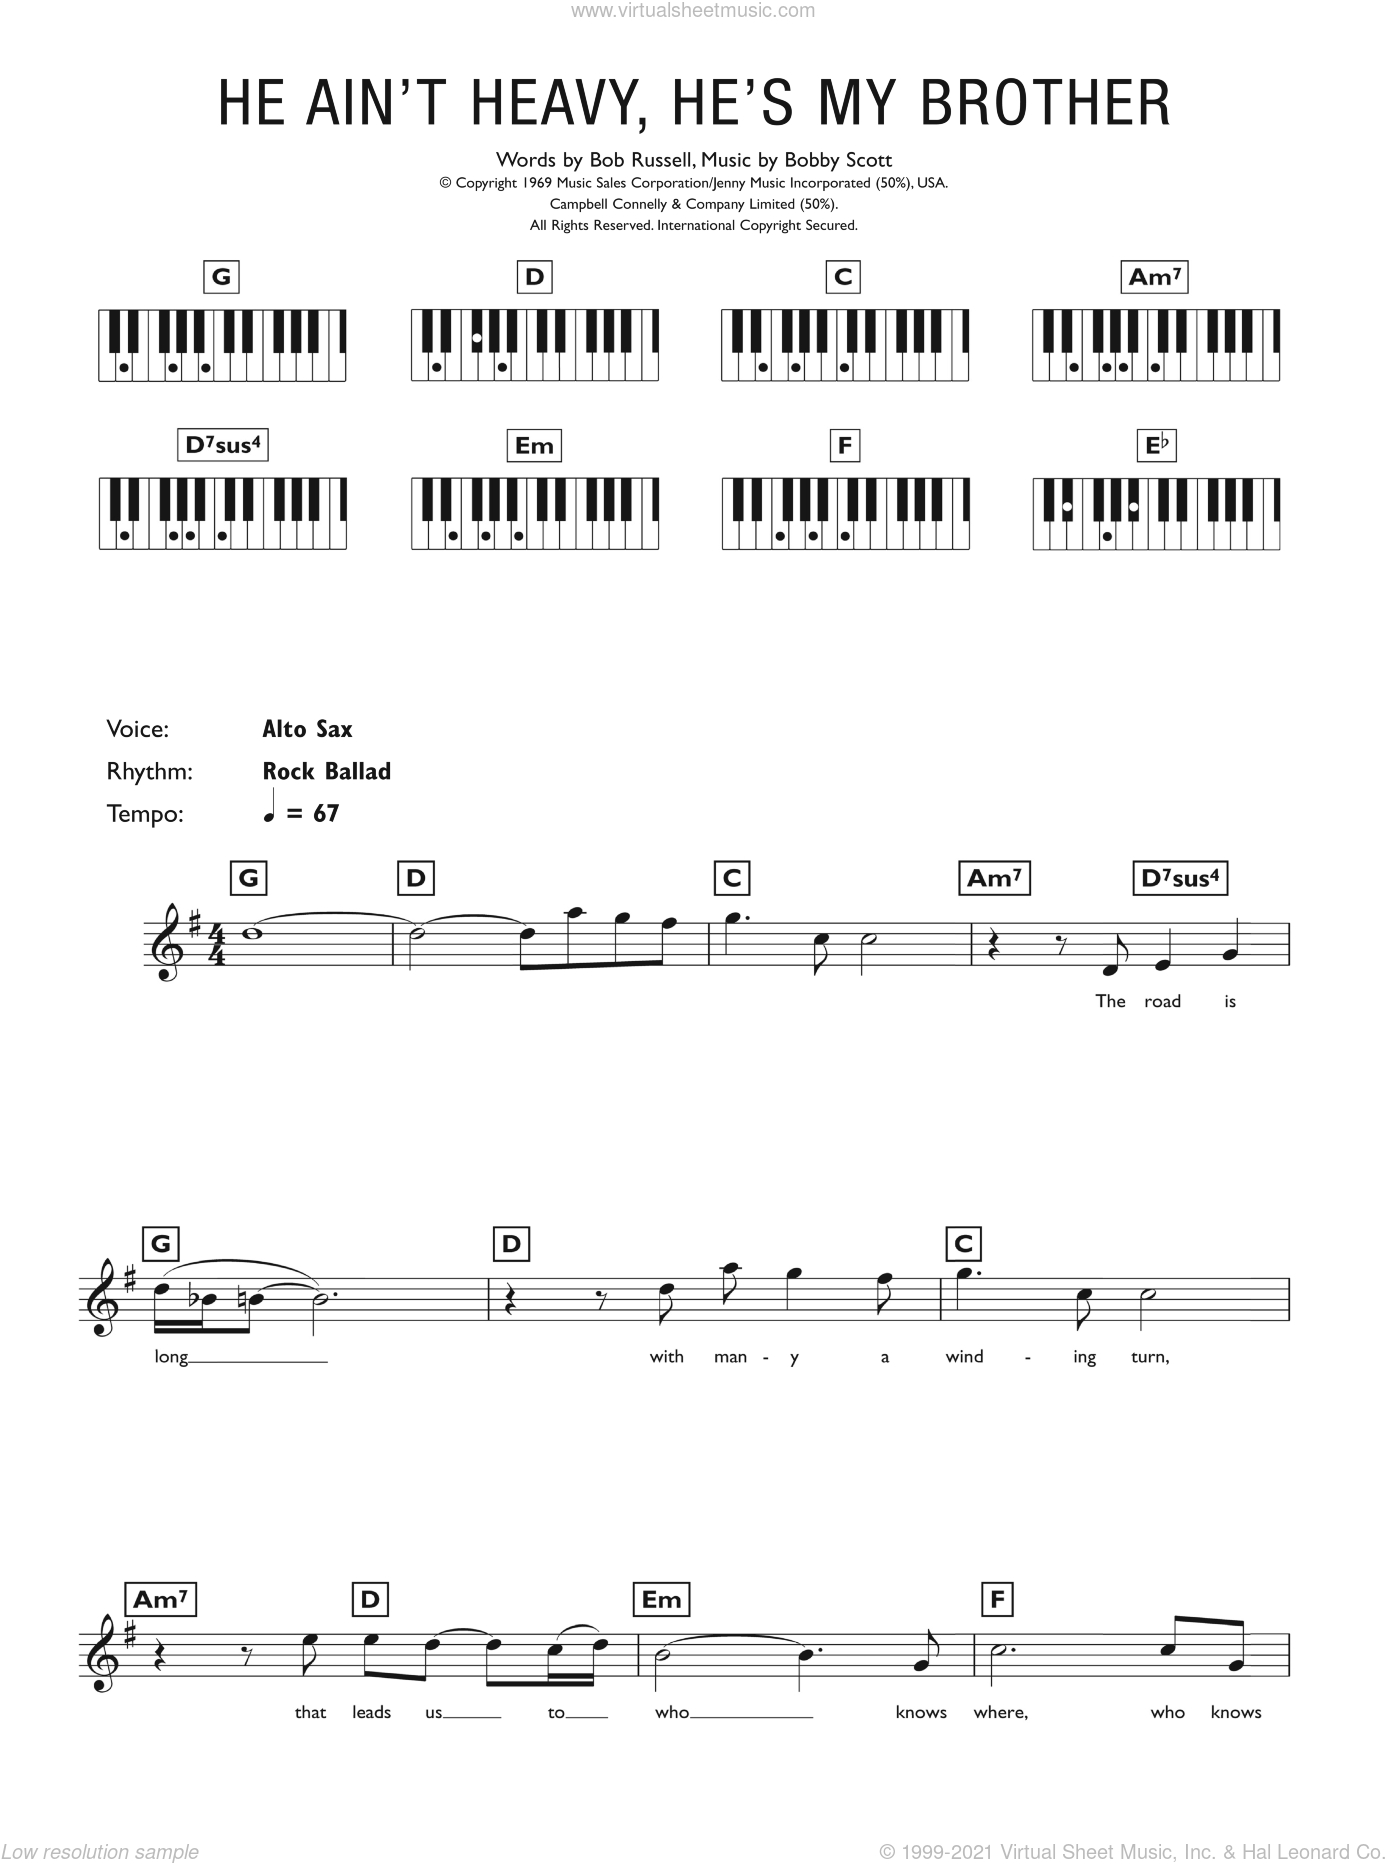 He Ain't Heavy, He's My Brother sheet music for piano solo (chords, lyrics, melody) by The Hollies, Bob Russell and Bobby Scott, intermediate piano (chords, lyrics, melody)